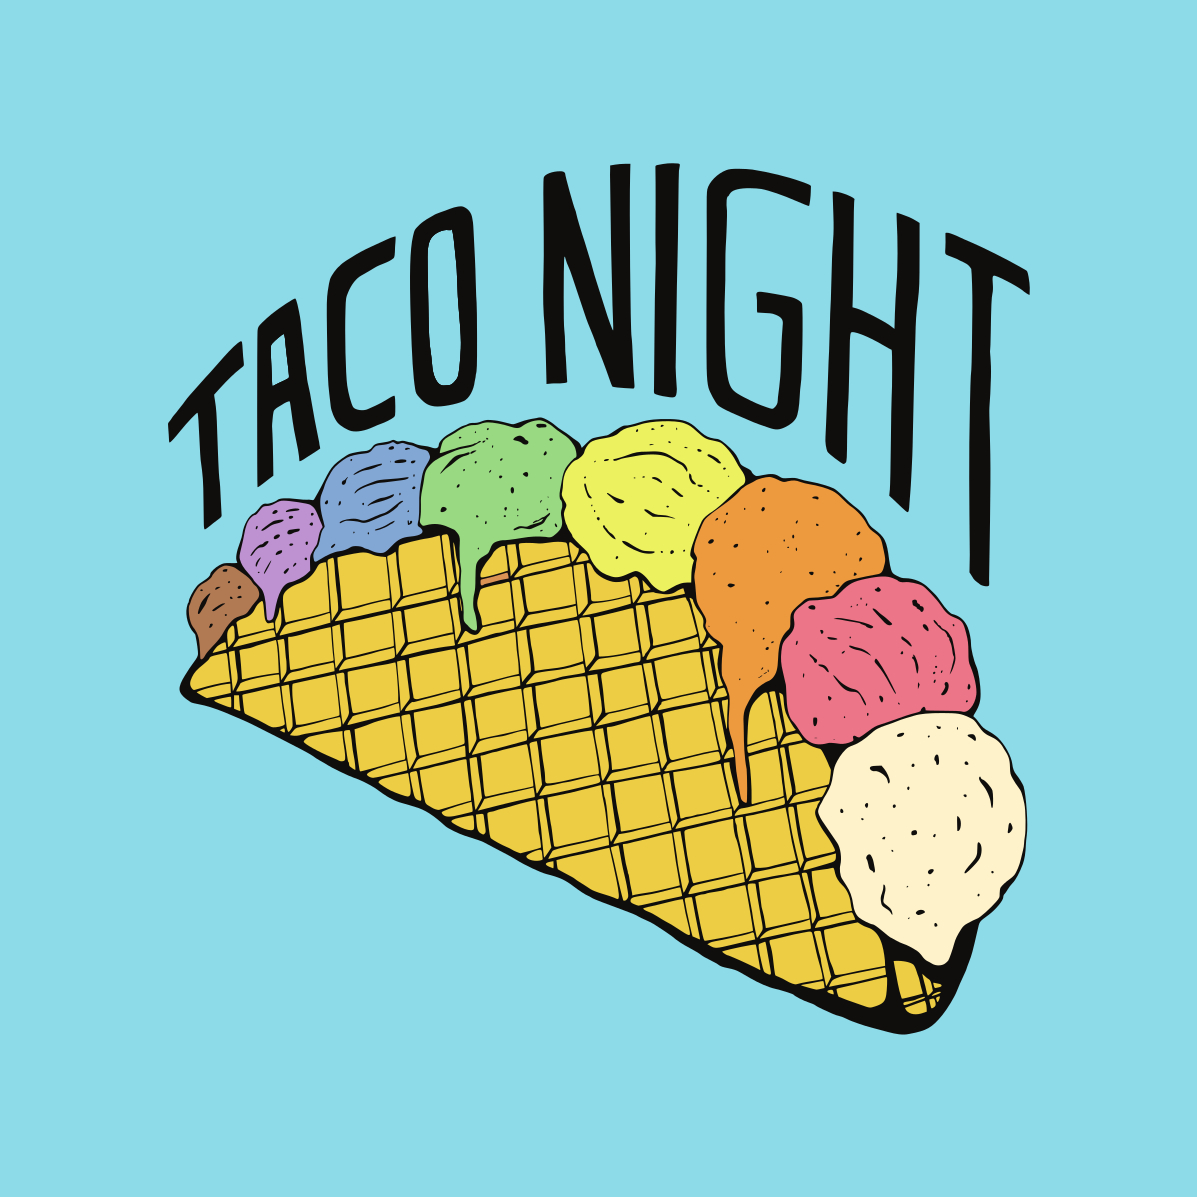 Ice cream taco night illustration